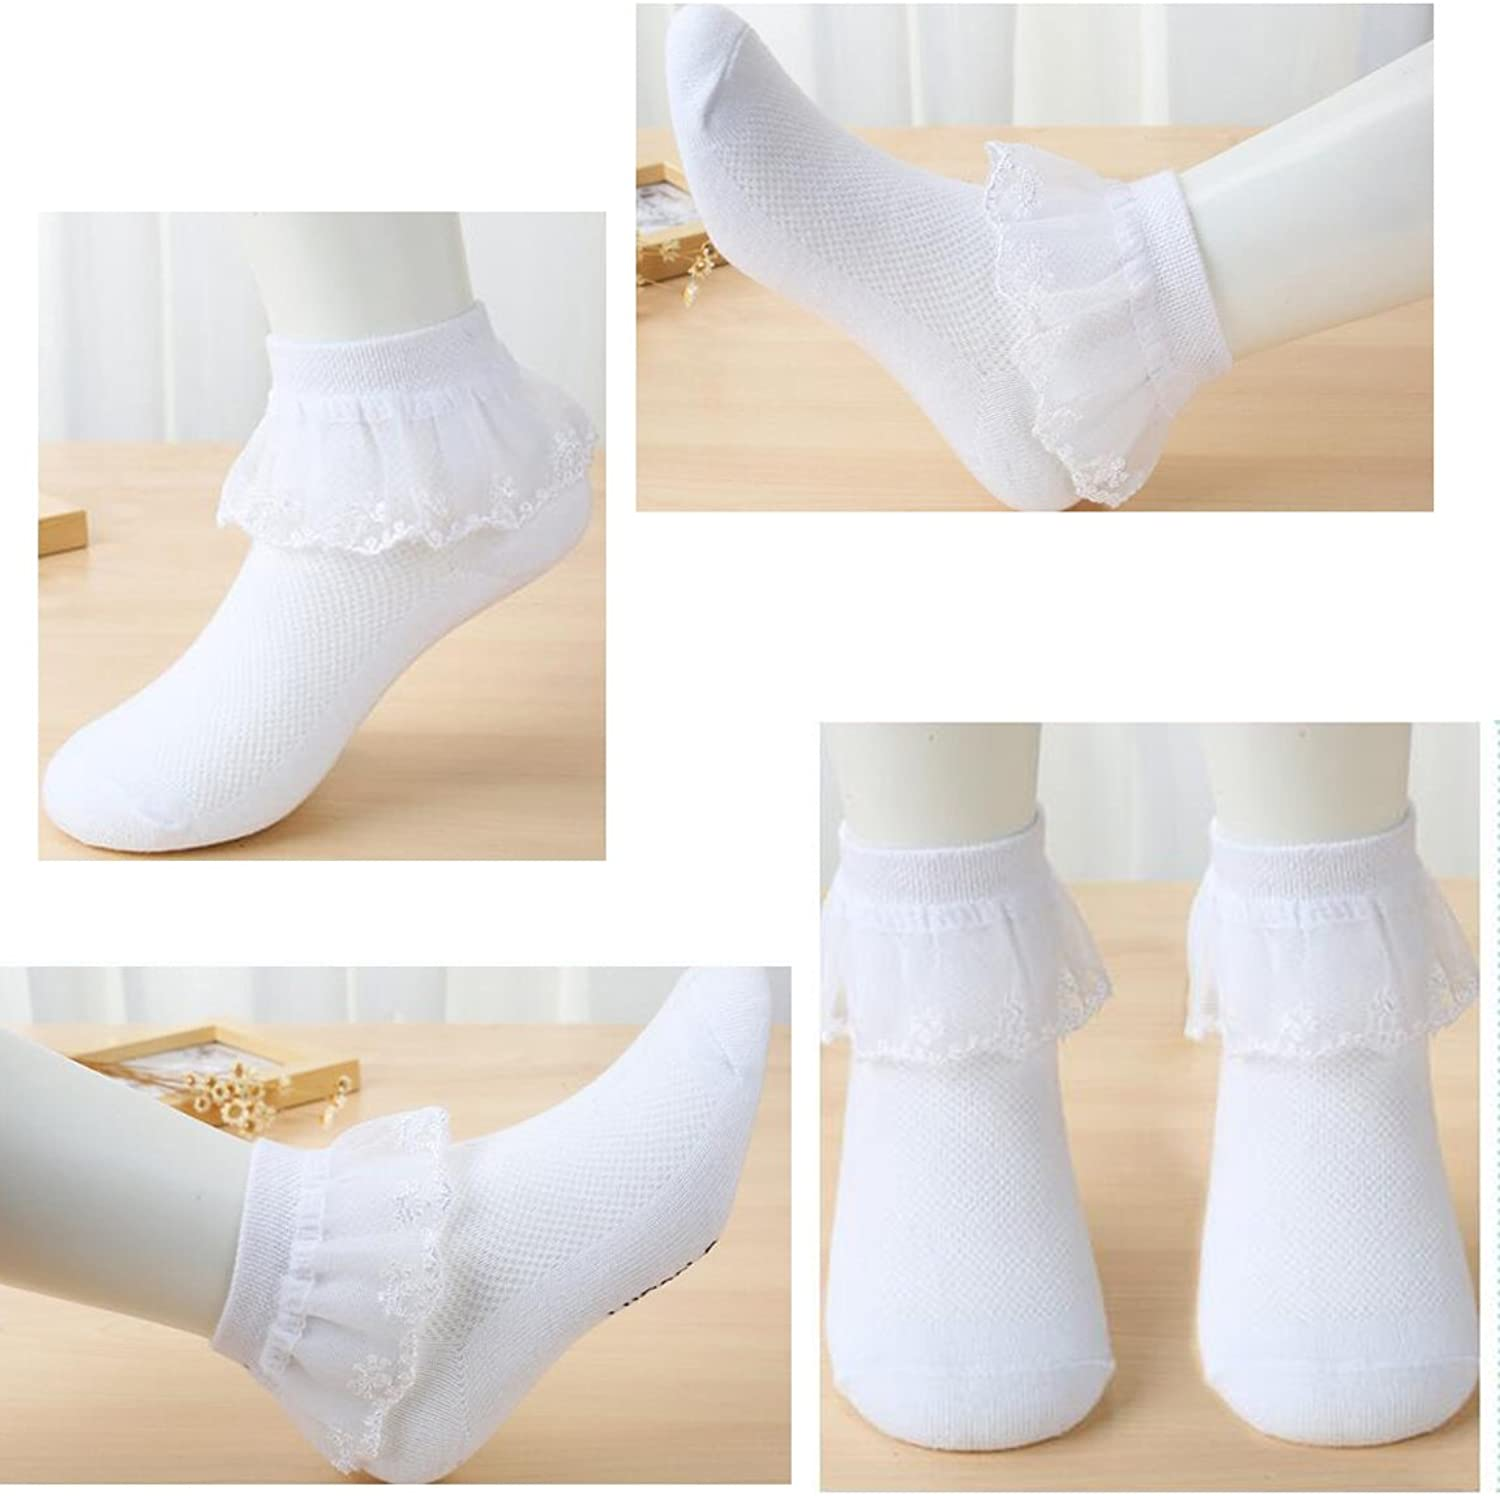 0m-10y 5 Pack of Girls White Lace Ruffle Socks Cotton Baby